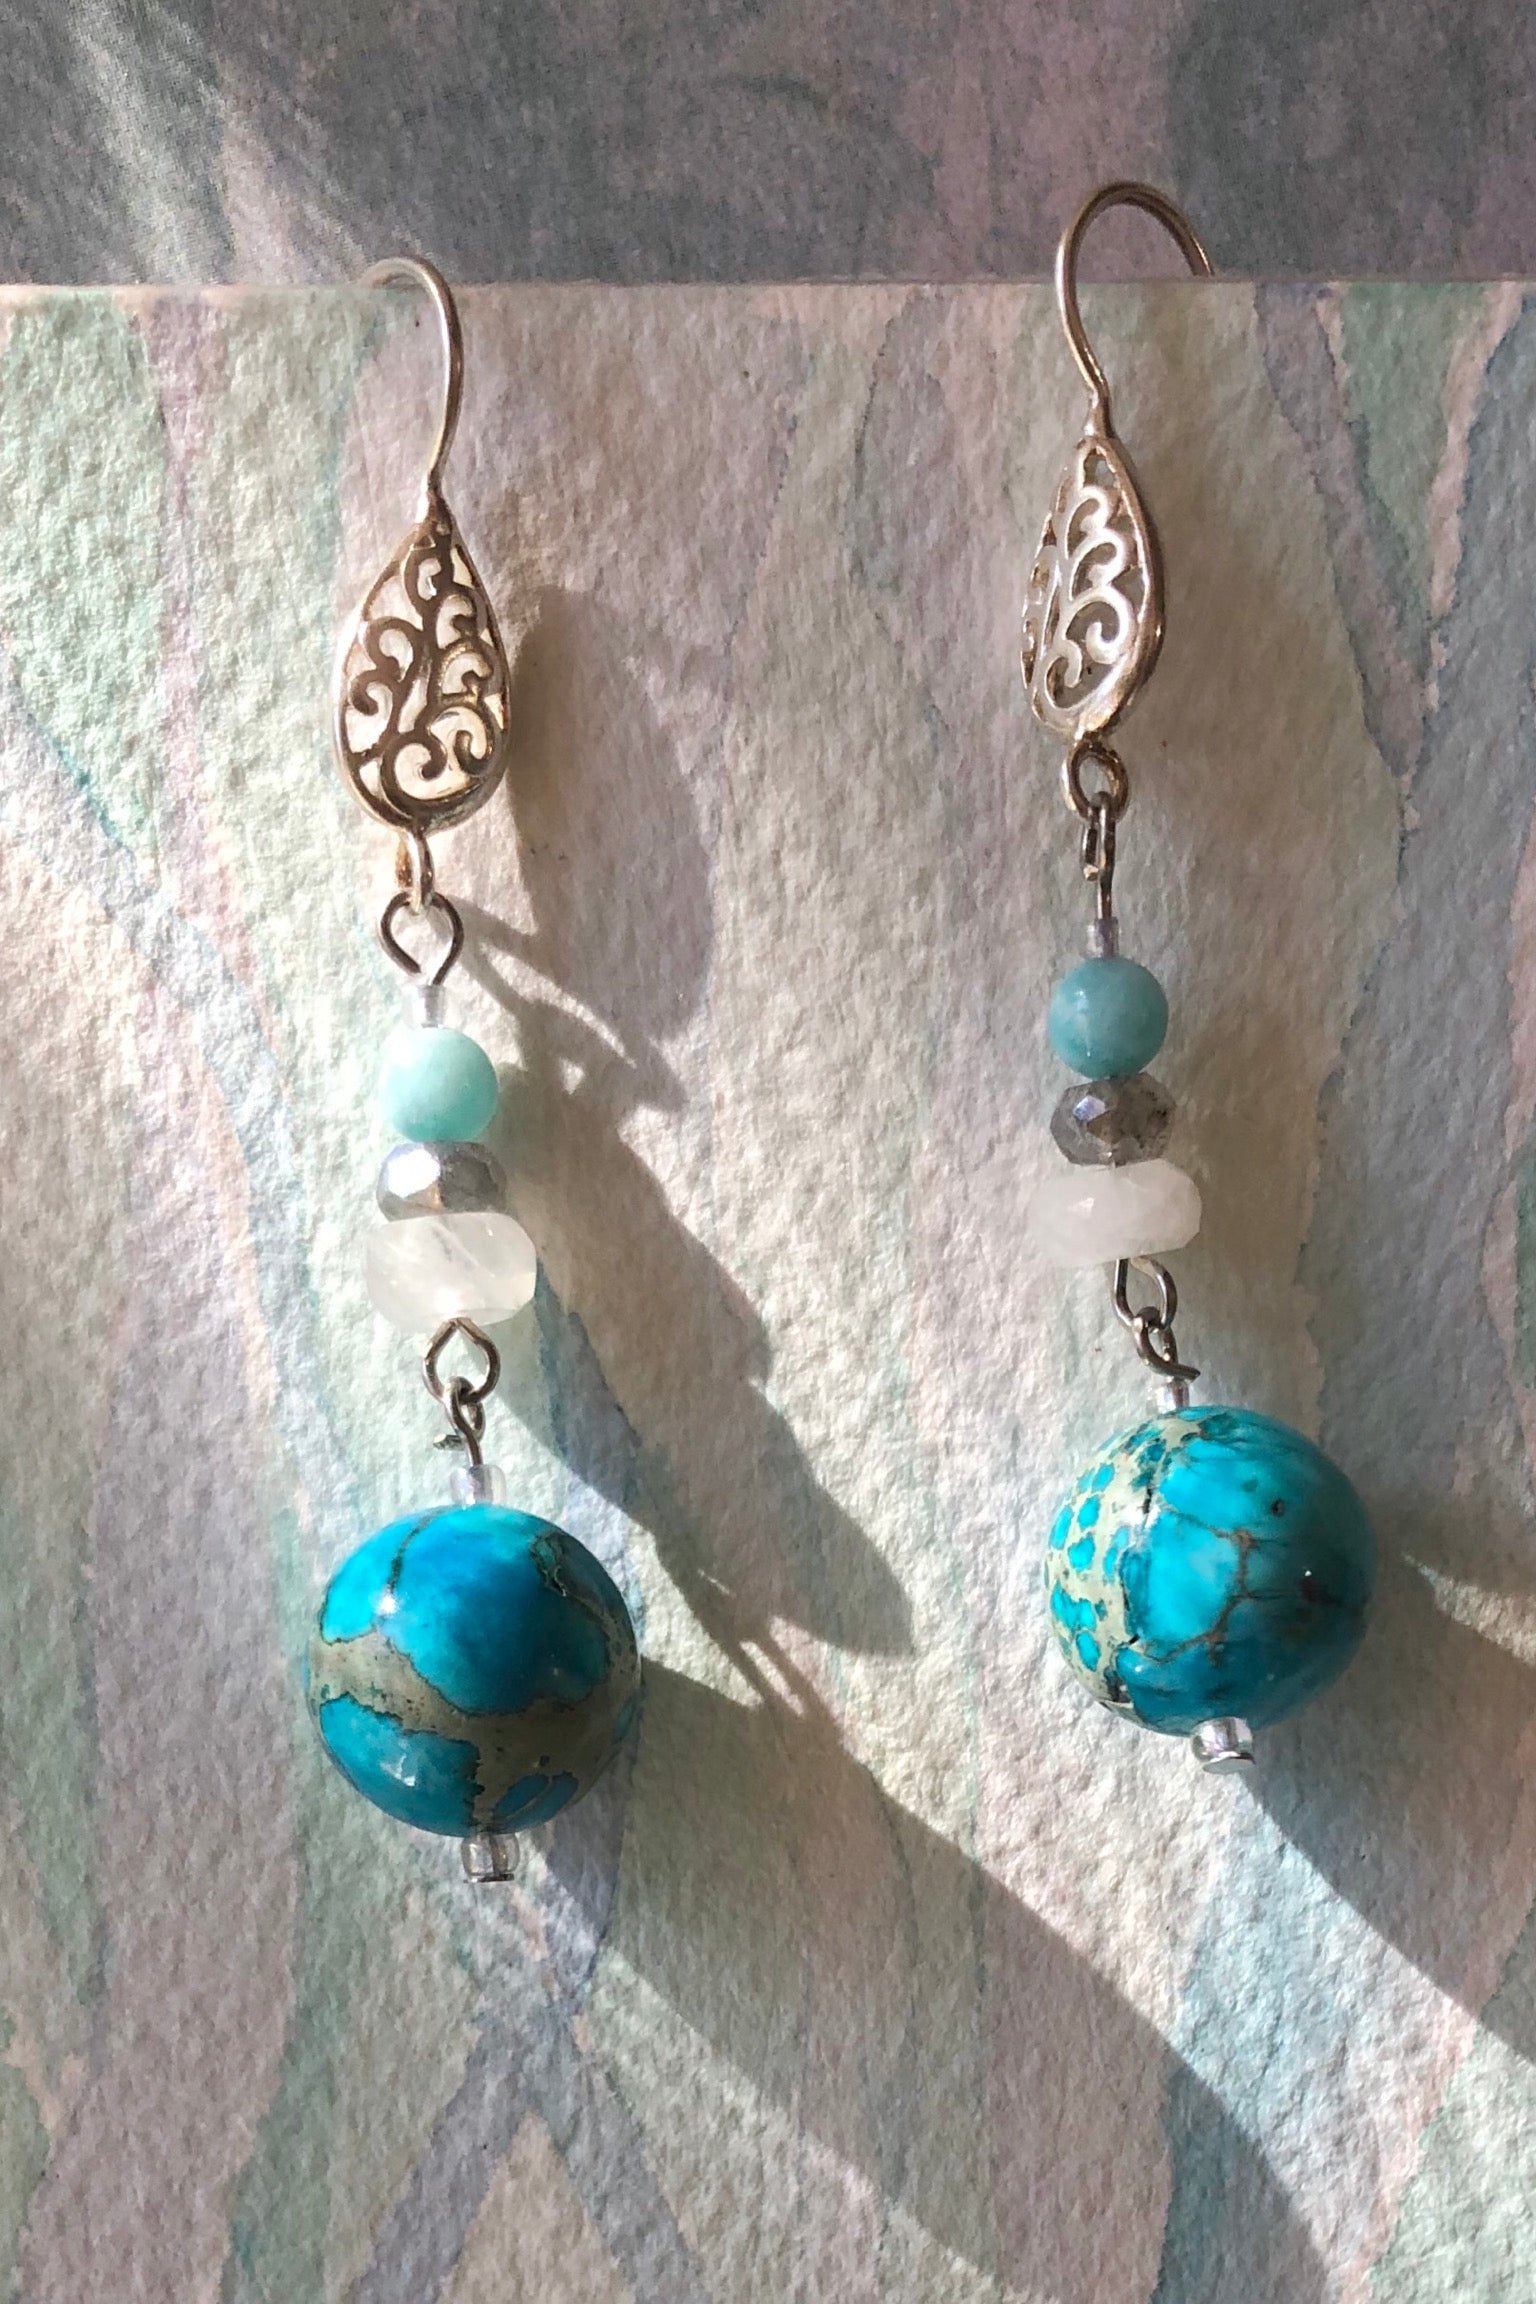 The Serendipity Earrings Turquoise Fairy are handmade in Noosa, Australia featuring Natural Howlite coloured turquoise, Moonstone bead, Labradorite bead and Amazonite bead.